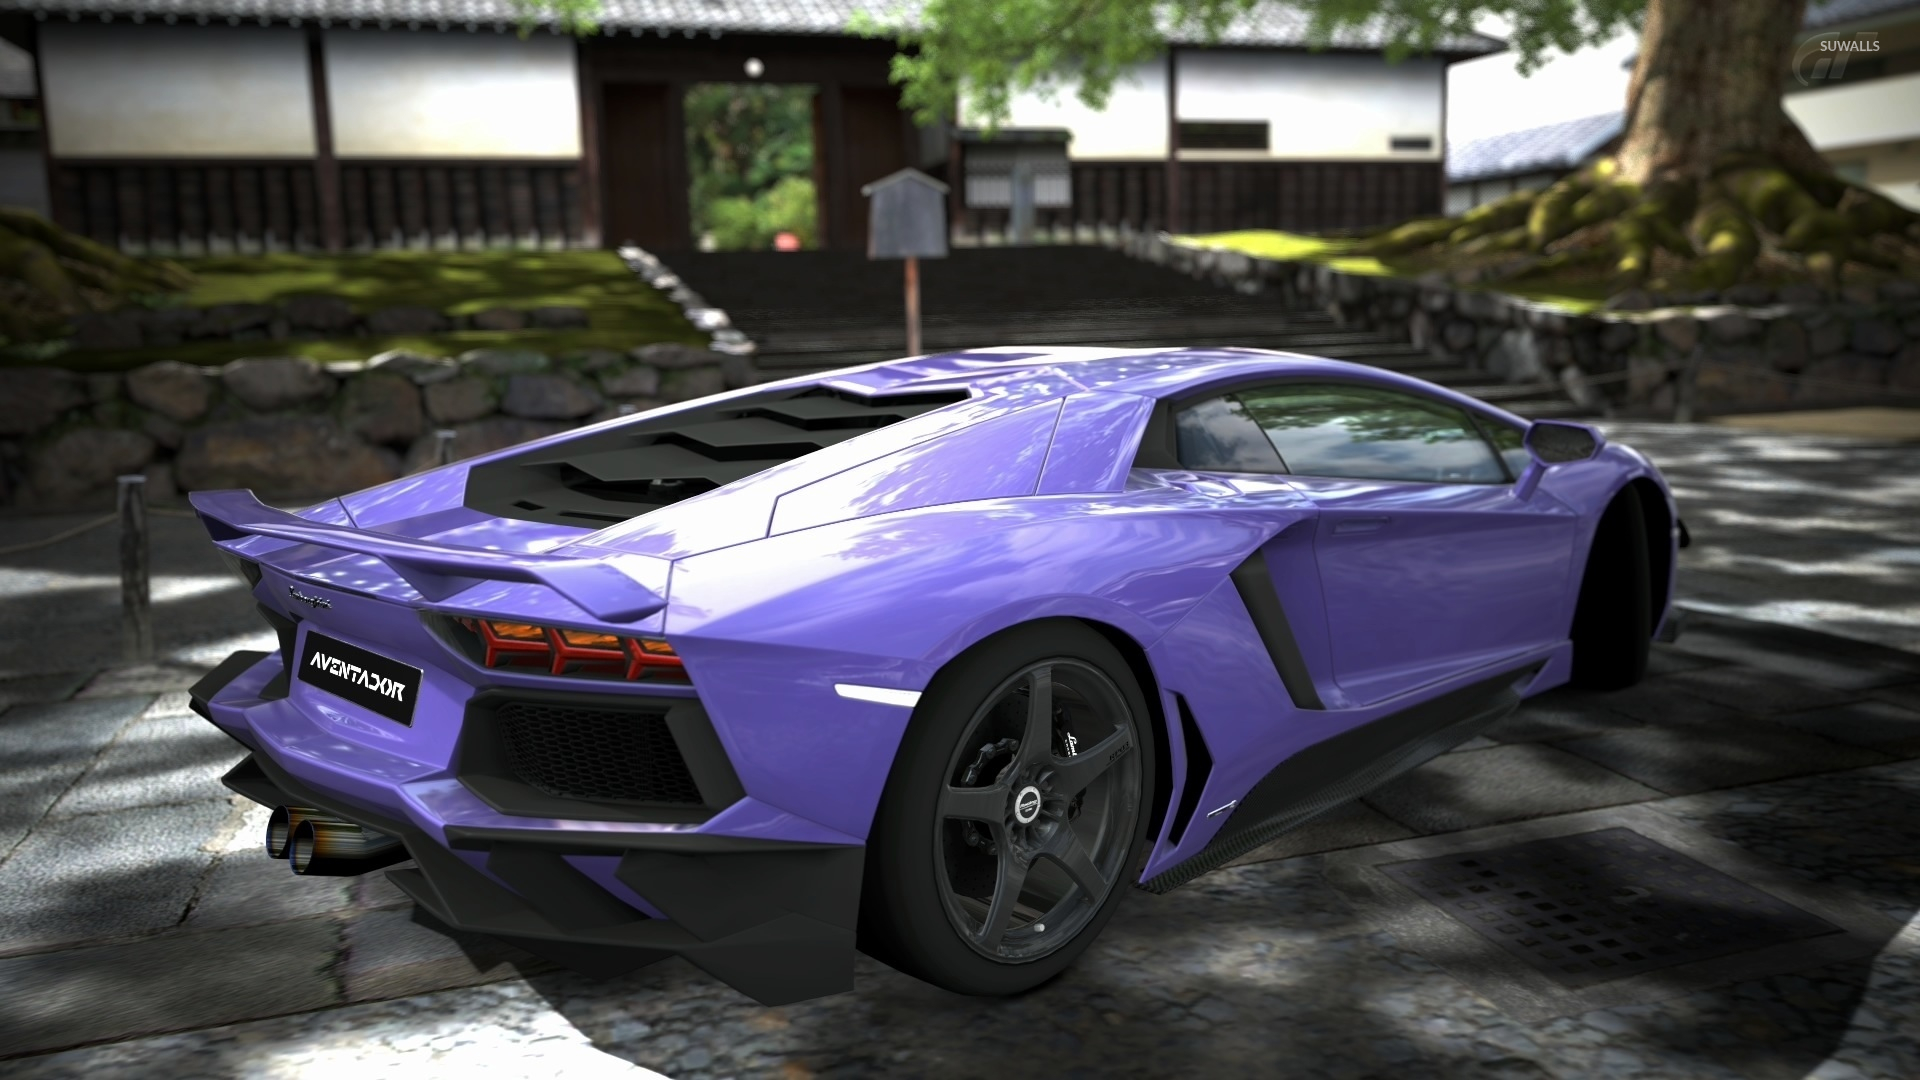 Lamborghini Aventador 13 Wallpaper Digital Art Wallpapers 40589